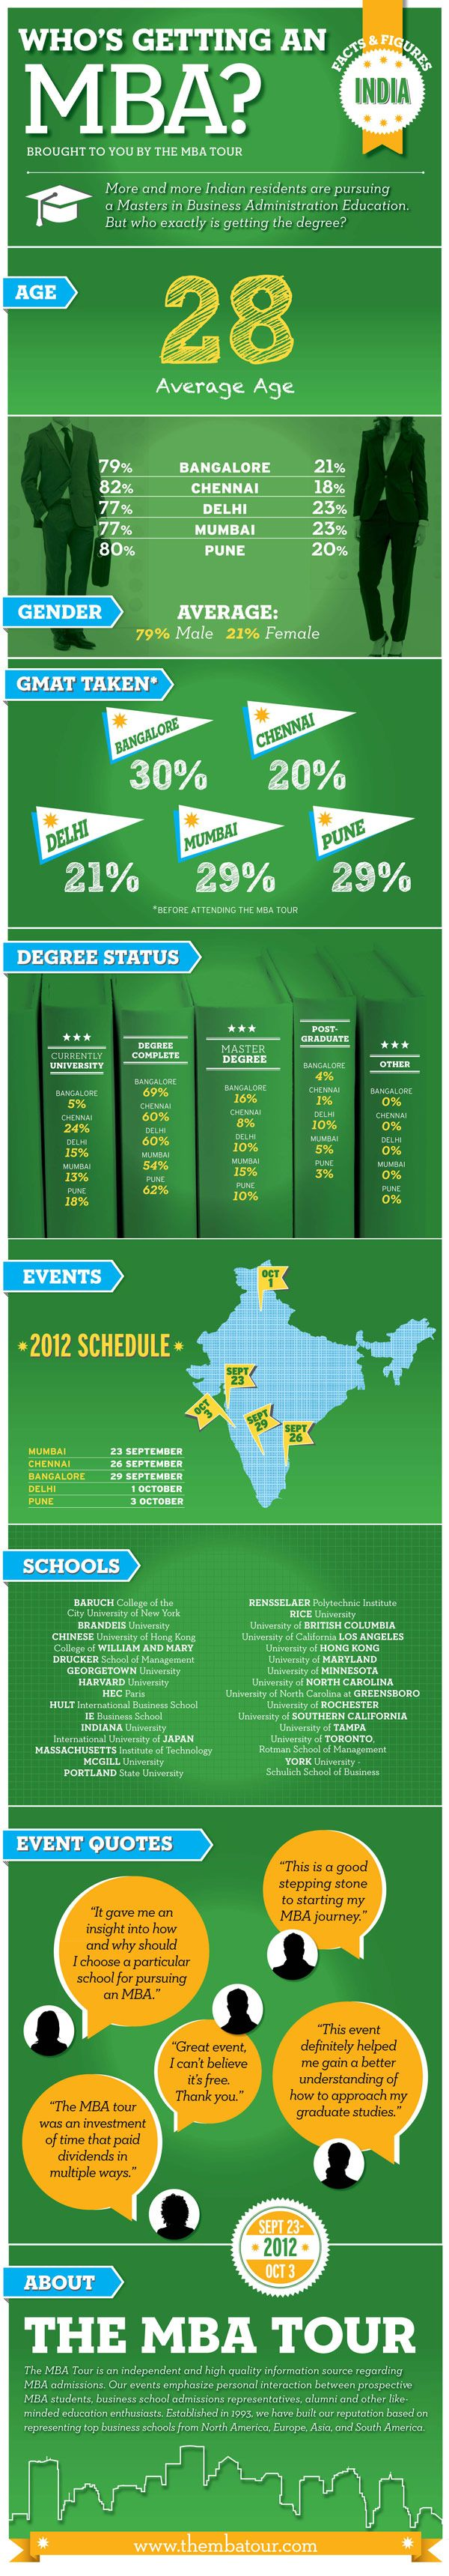 India: Who's getting an MBA? is our latest infographic created with the data we collected at our Indian MBA Tour events in 2011. Visit http://www.thembatour.com for more MBA related resources. [Click image for larger version]